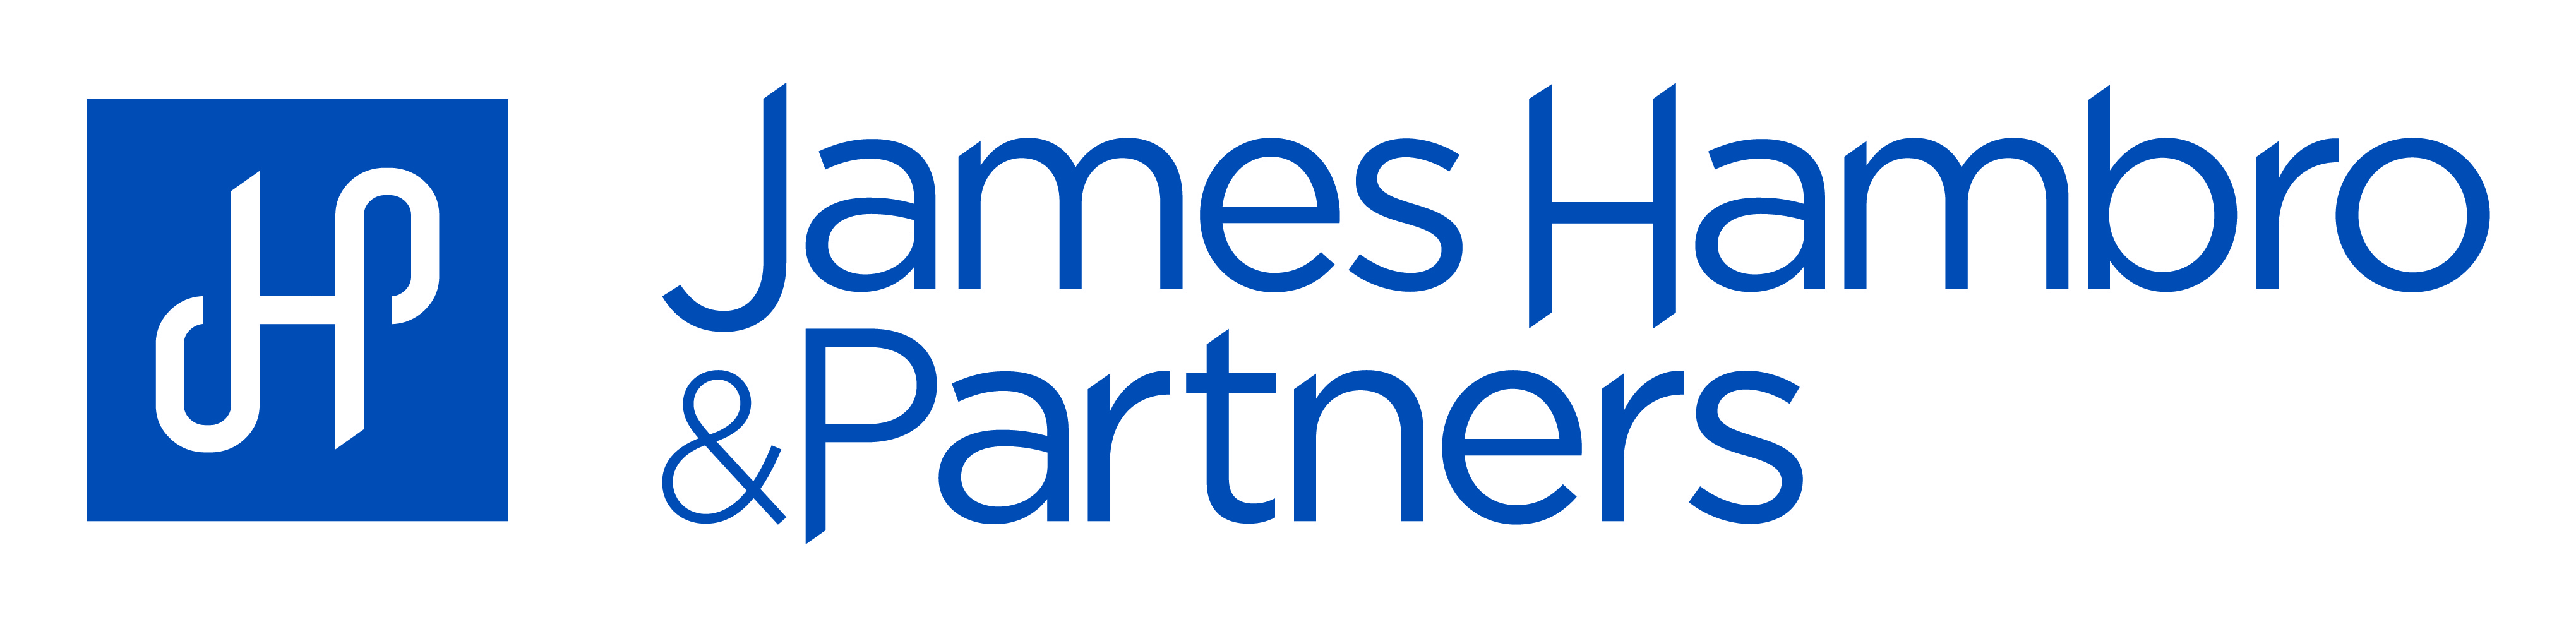 James Hambro & Partners LLP